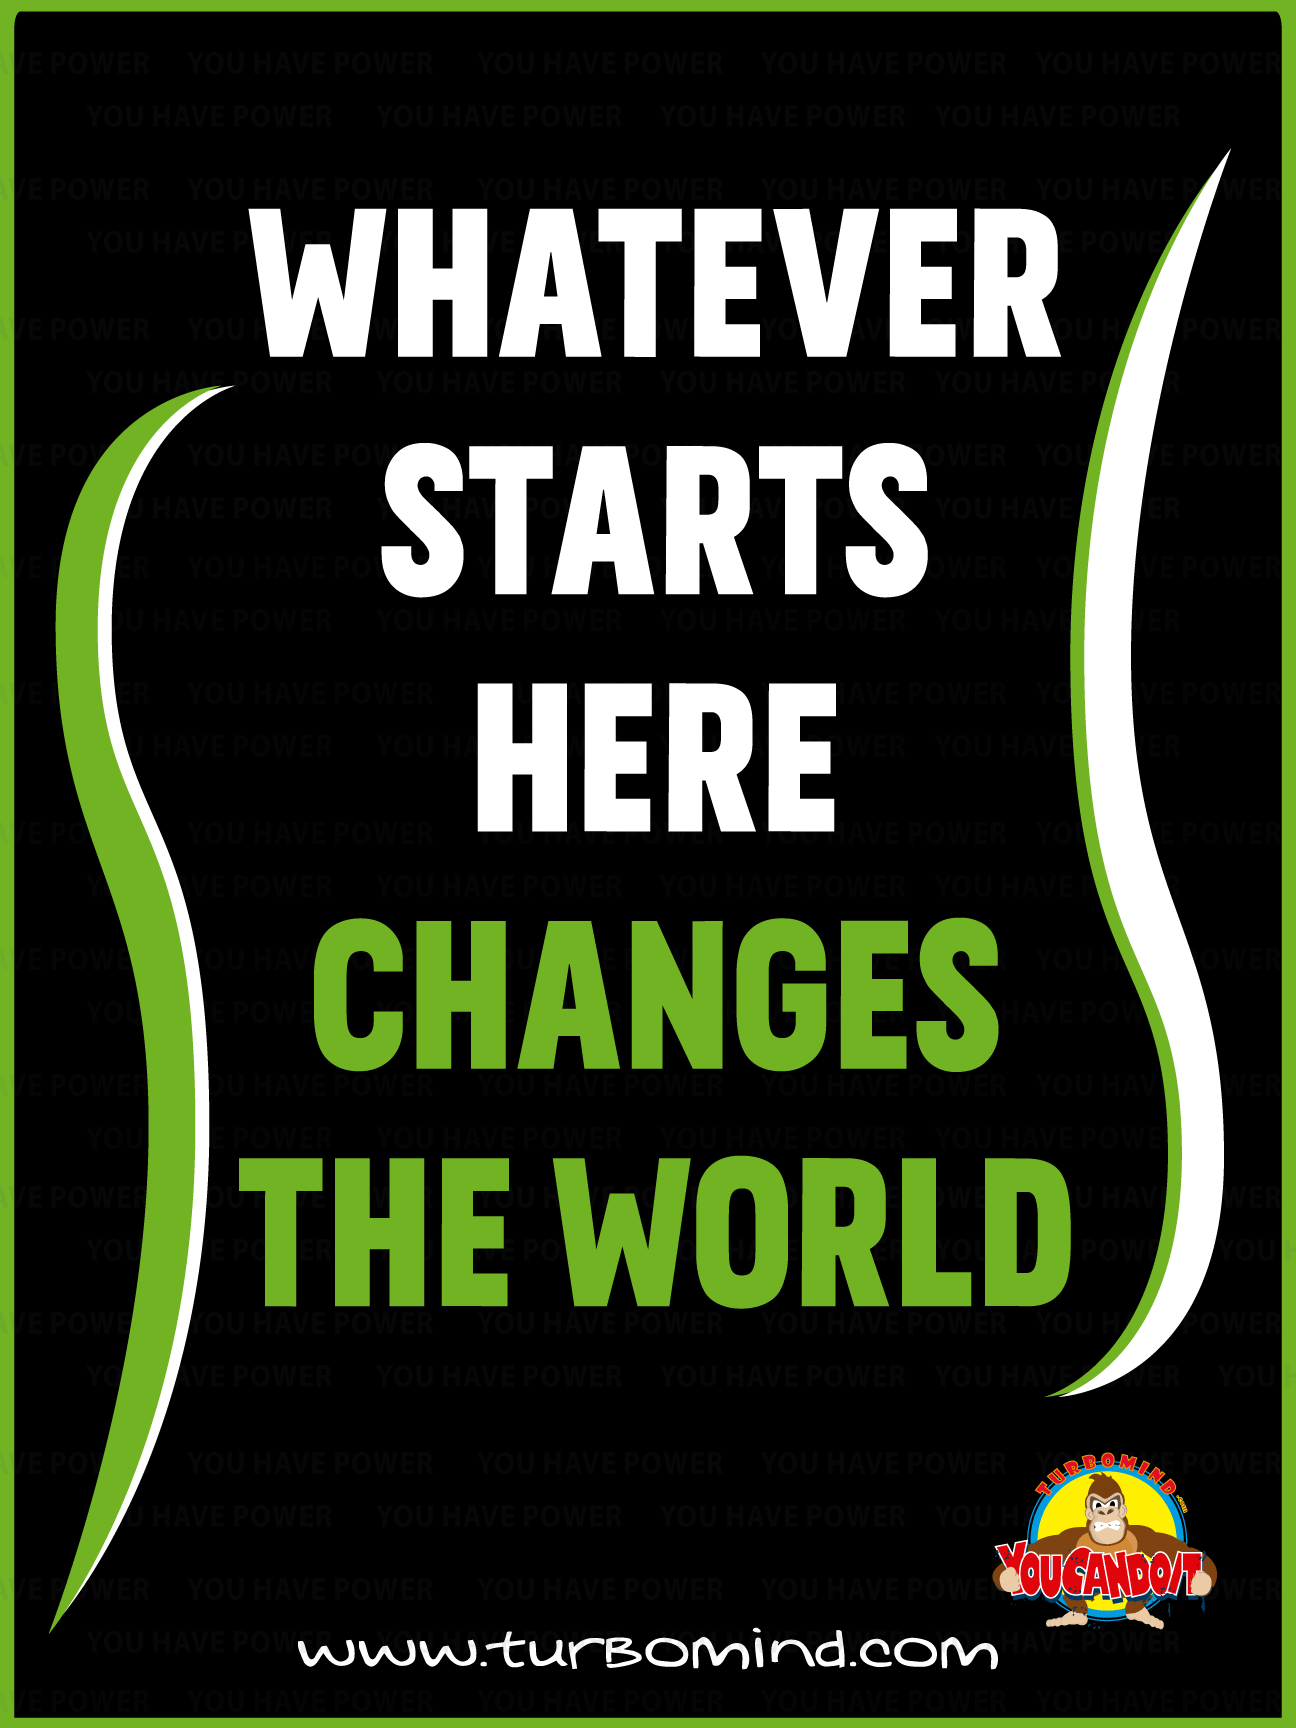 WHATEVER STARTS HERE CHANGES THE WOLRD